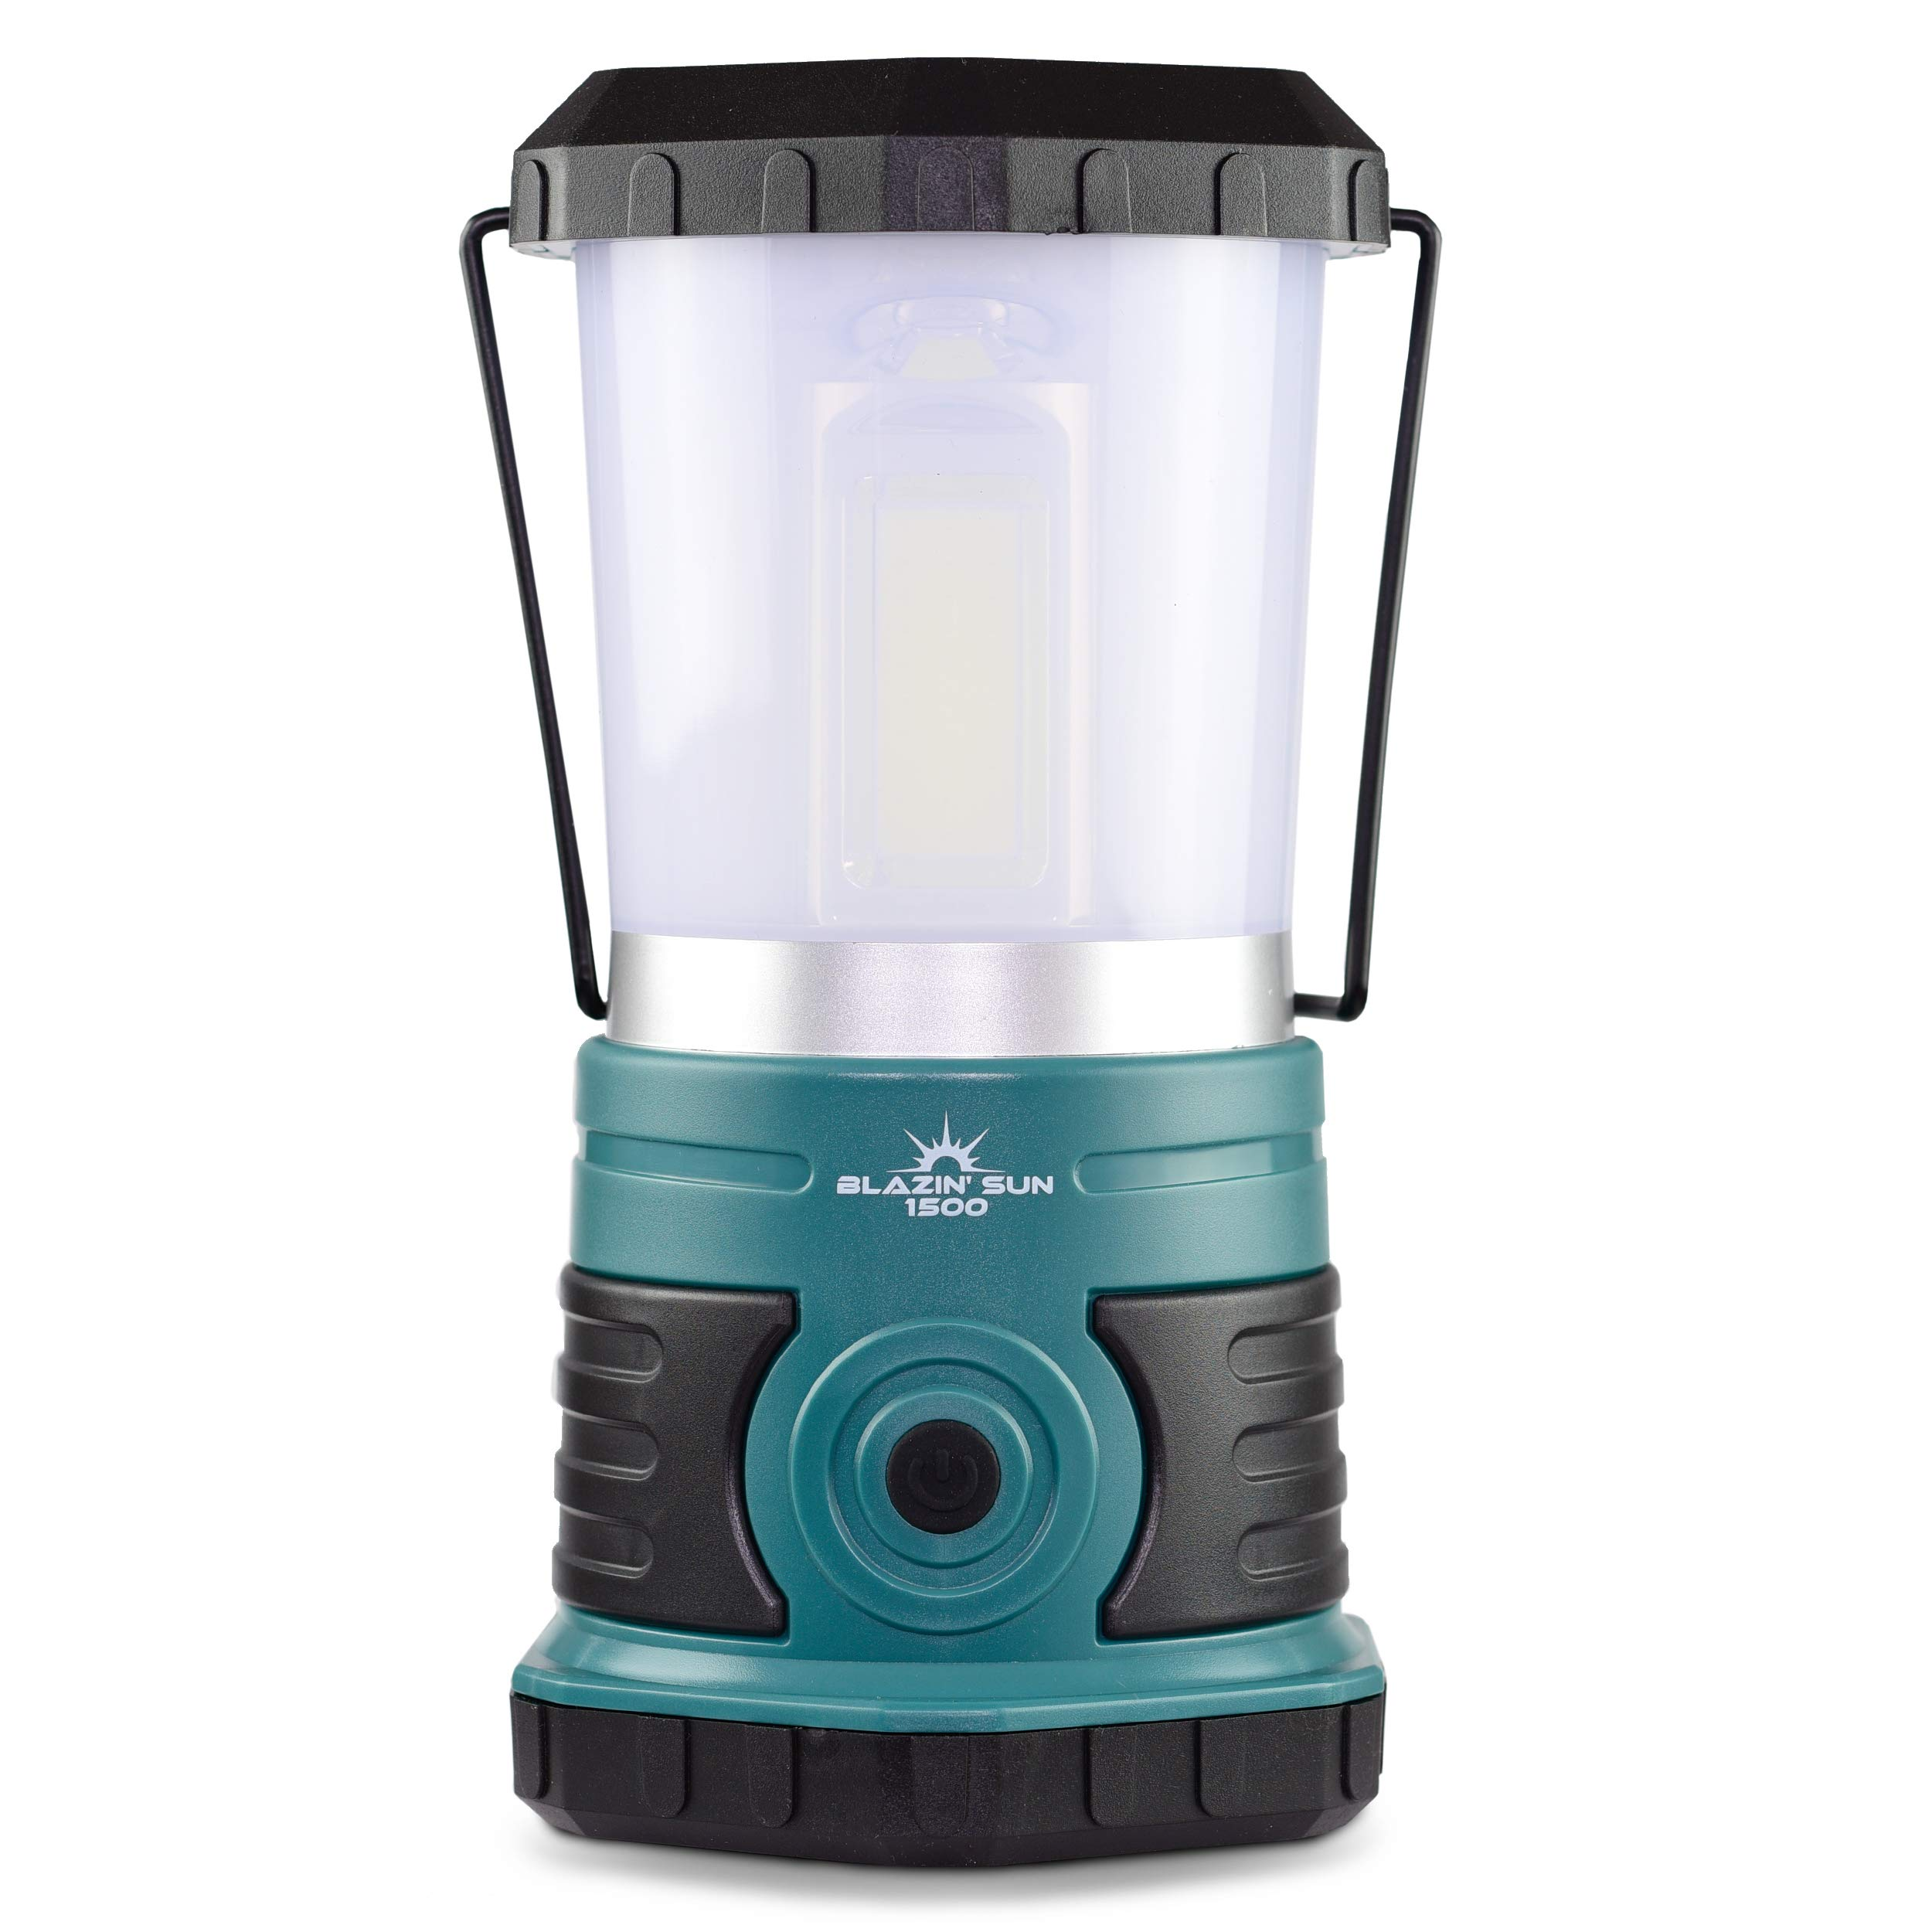 Blazin' Sun 1500 Lumen | Led Lanterns Battery Operated | Hurricane, Emergency, Storm, Power Outage Light | 200 Hour Runtime (Teal) by Blazin' Bison